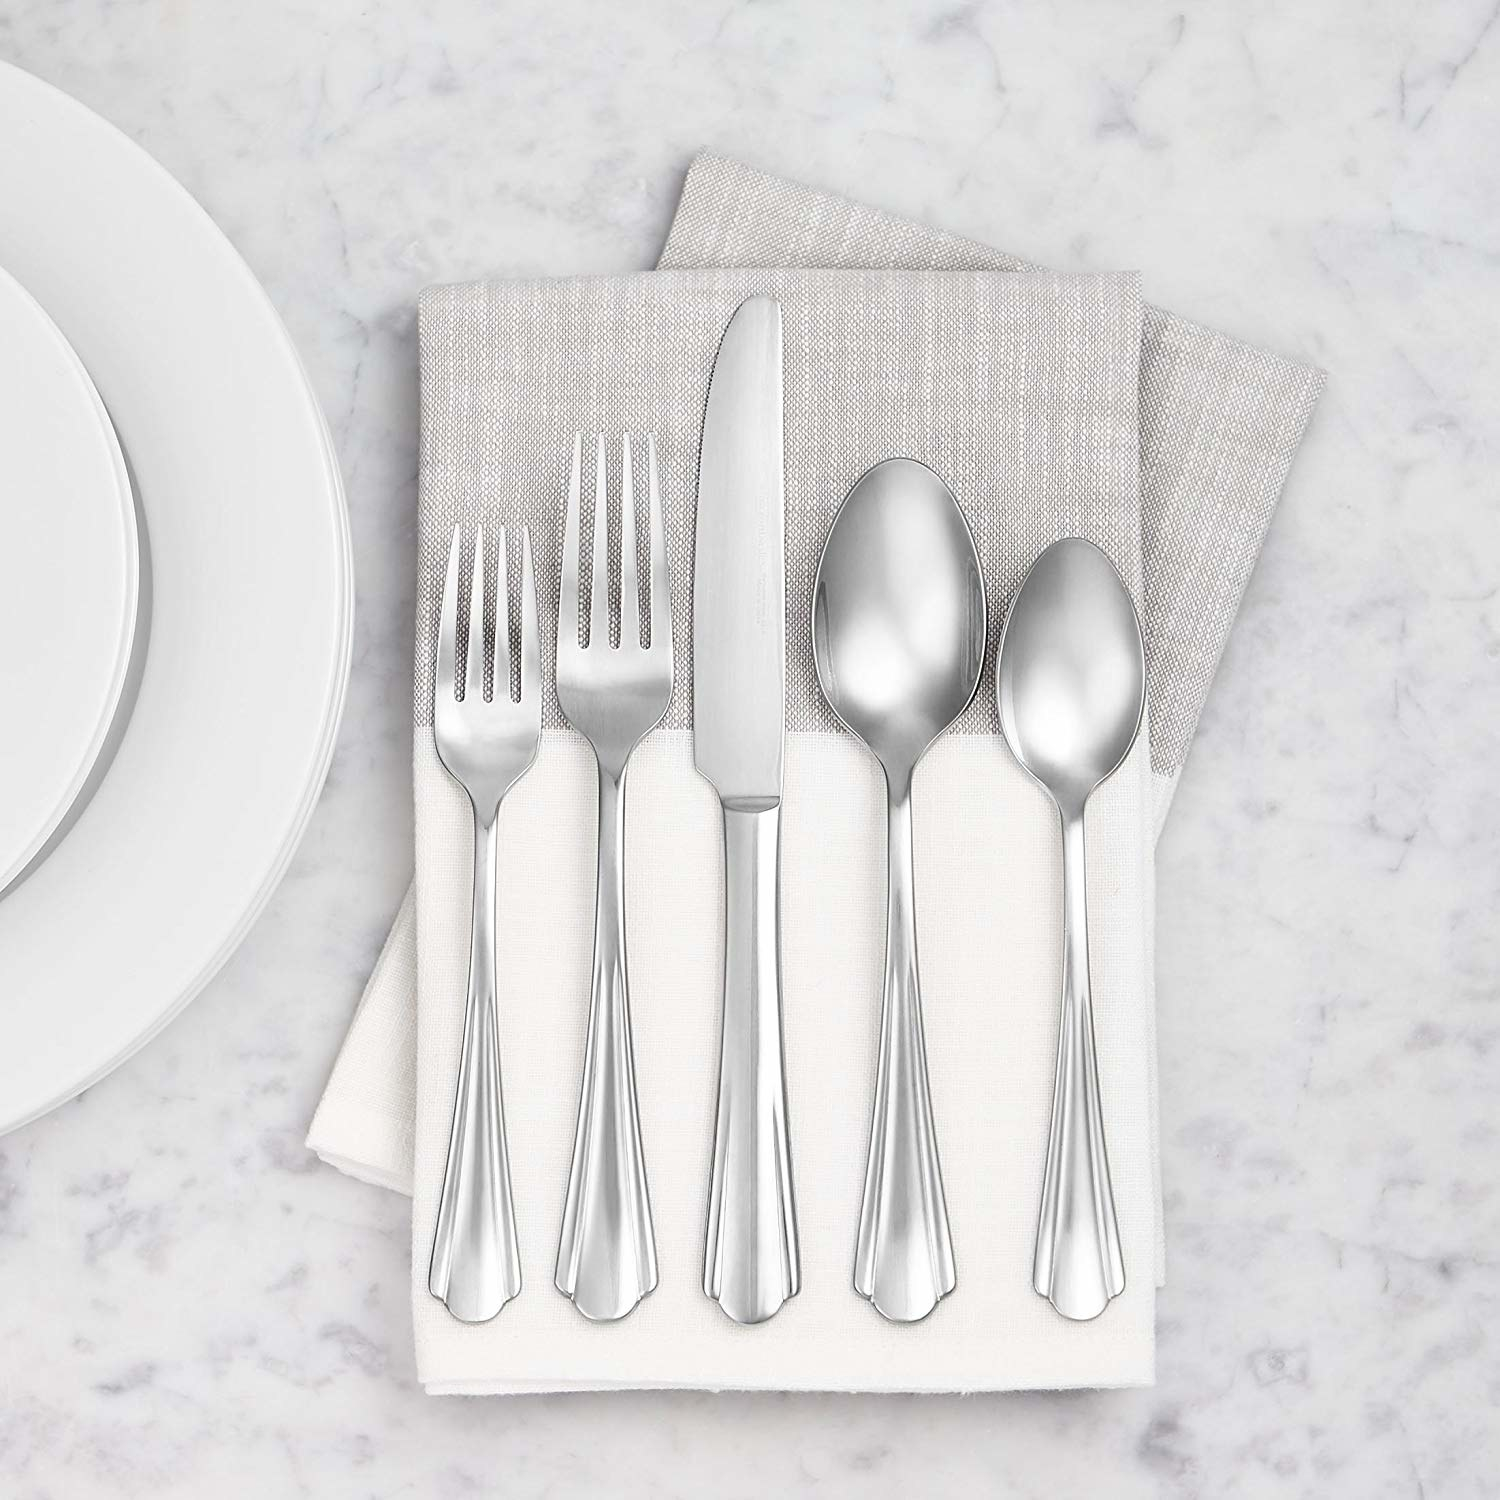 napkin beside of dinner plate on table with all five pieces of silverware in the set